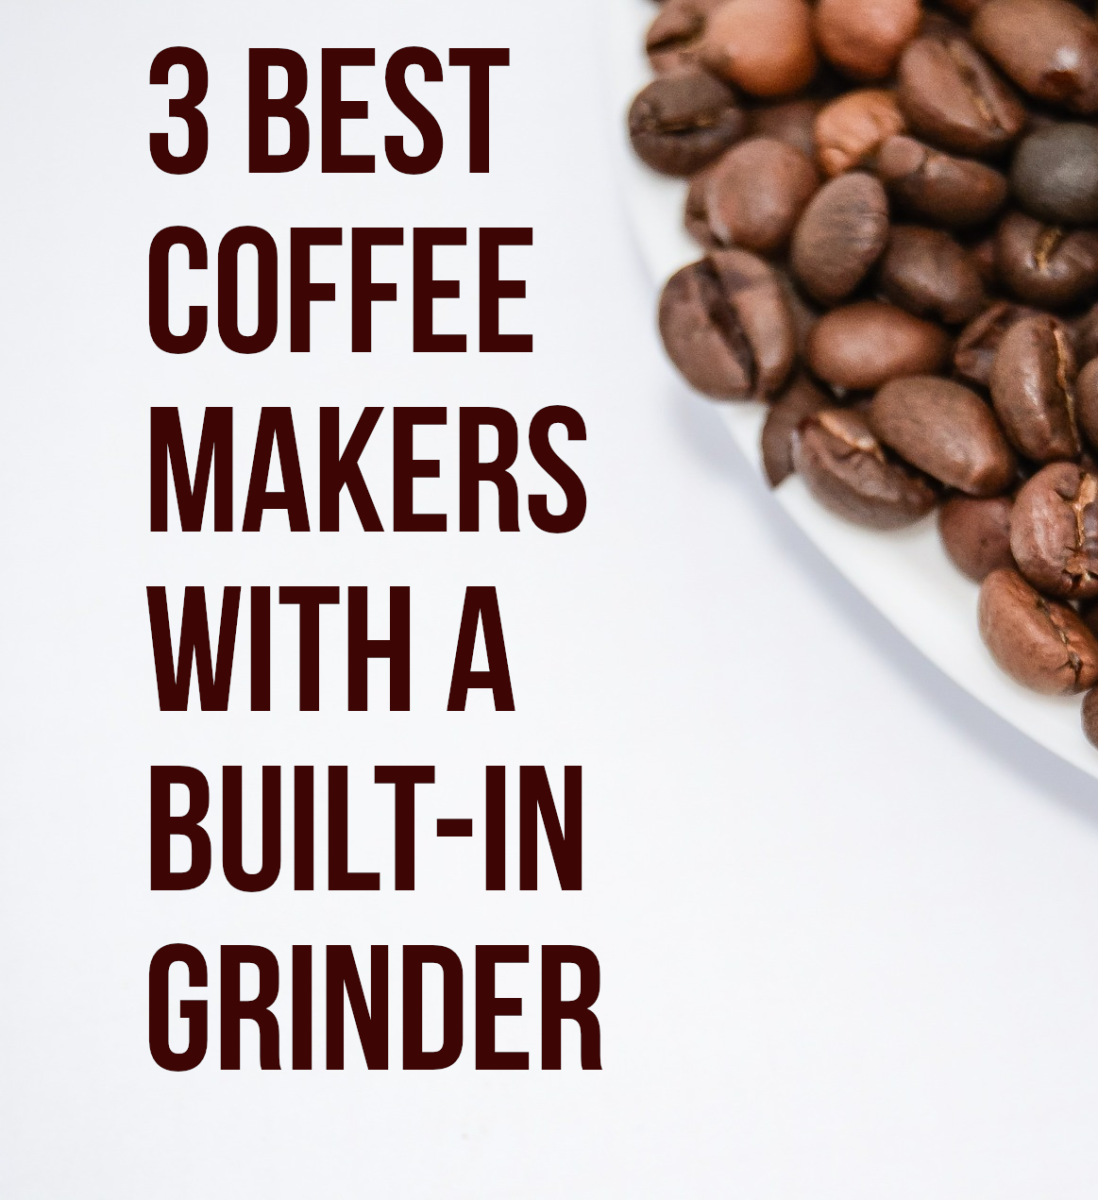 3 Best Coffee Makers That Have a Built-In Grinder